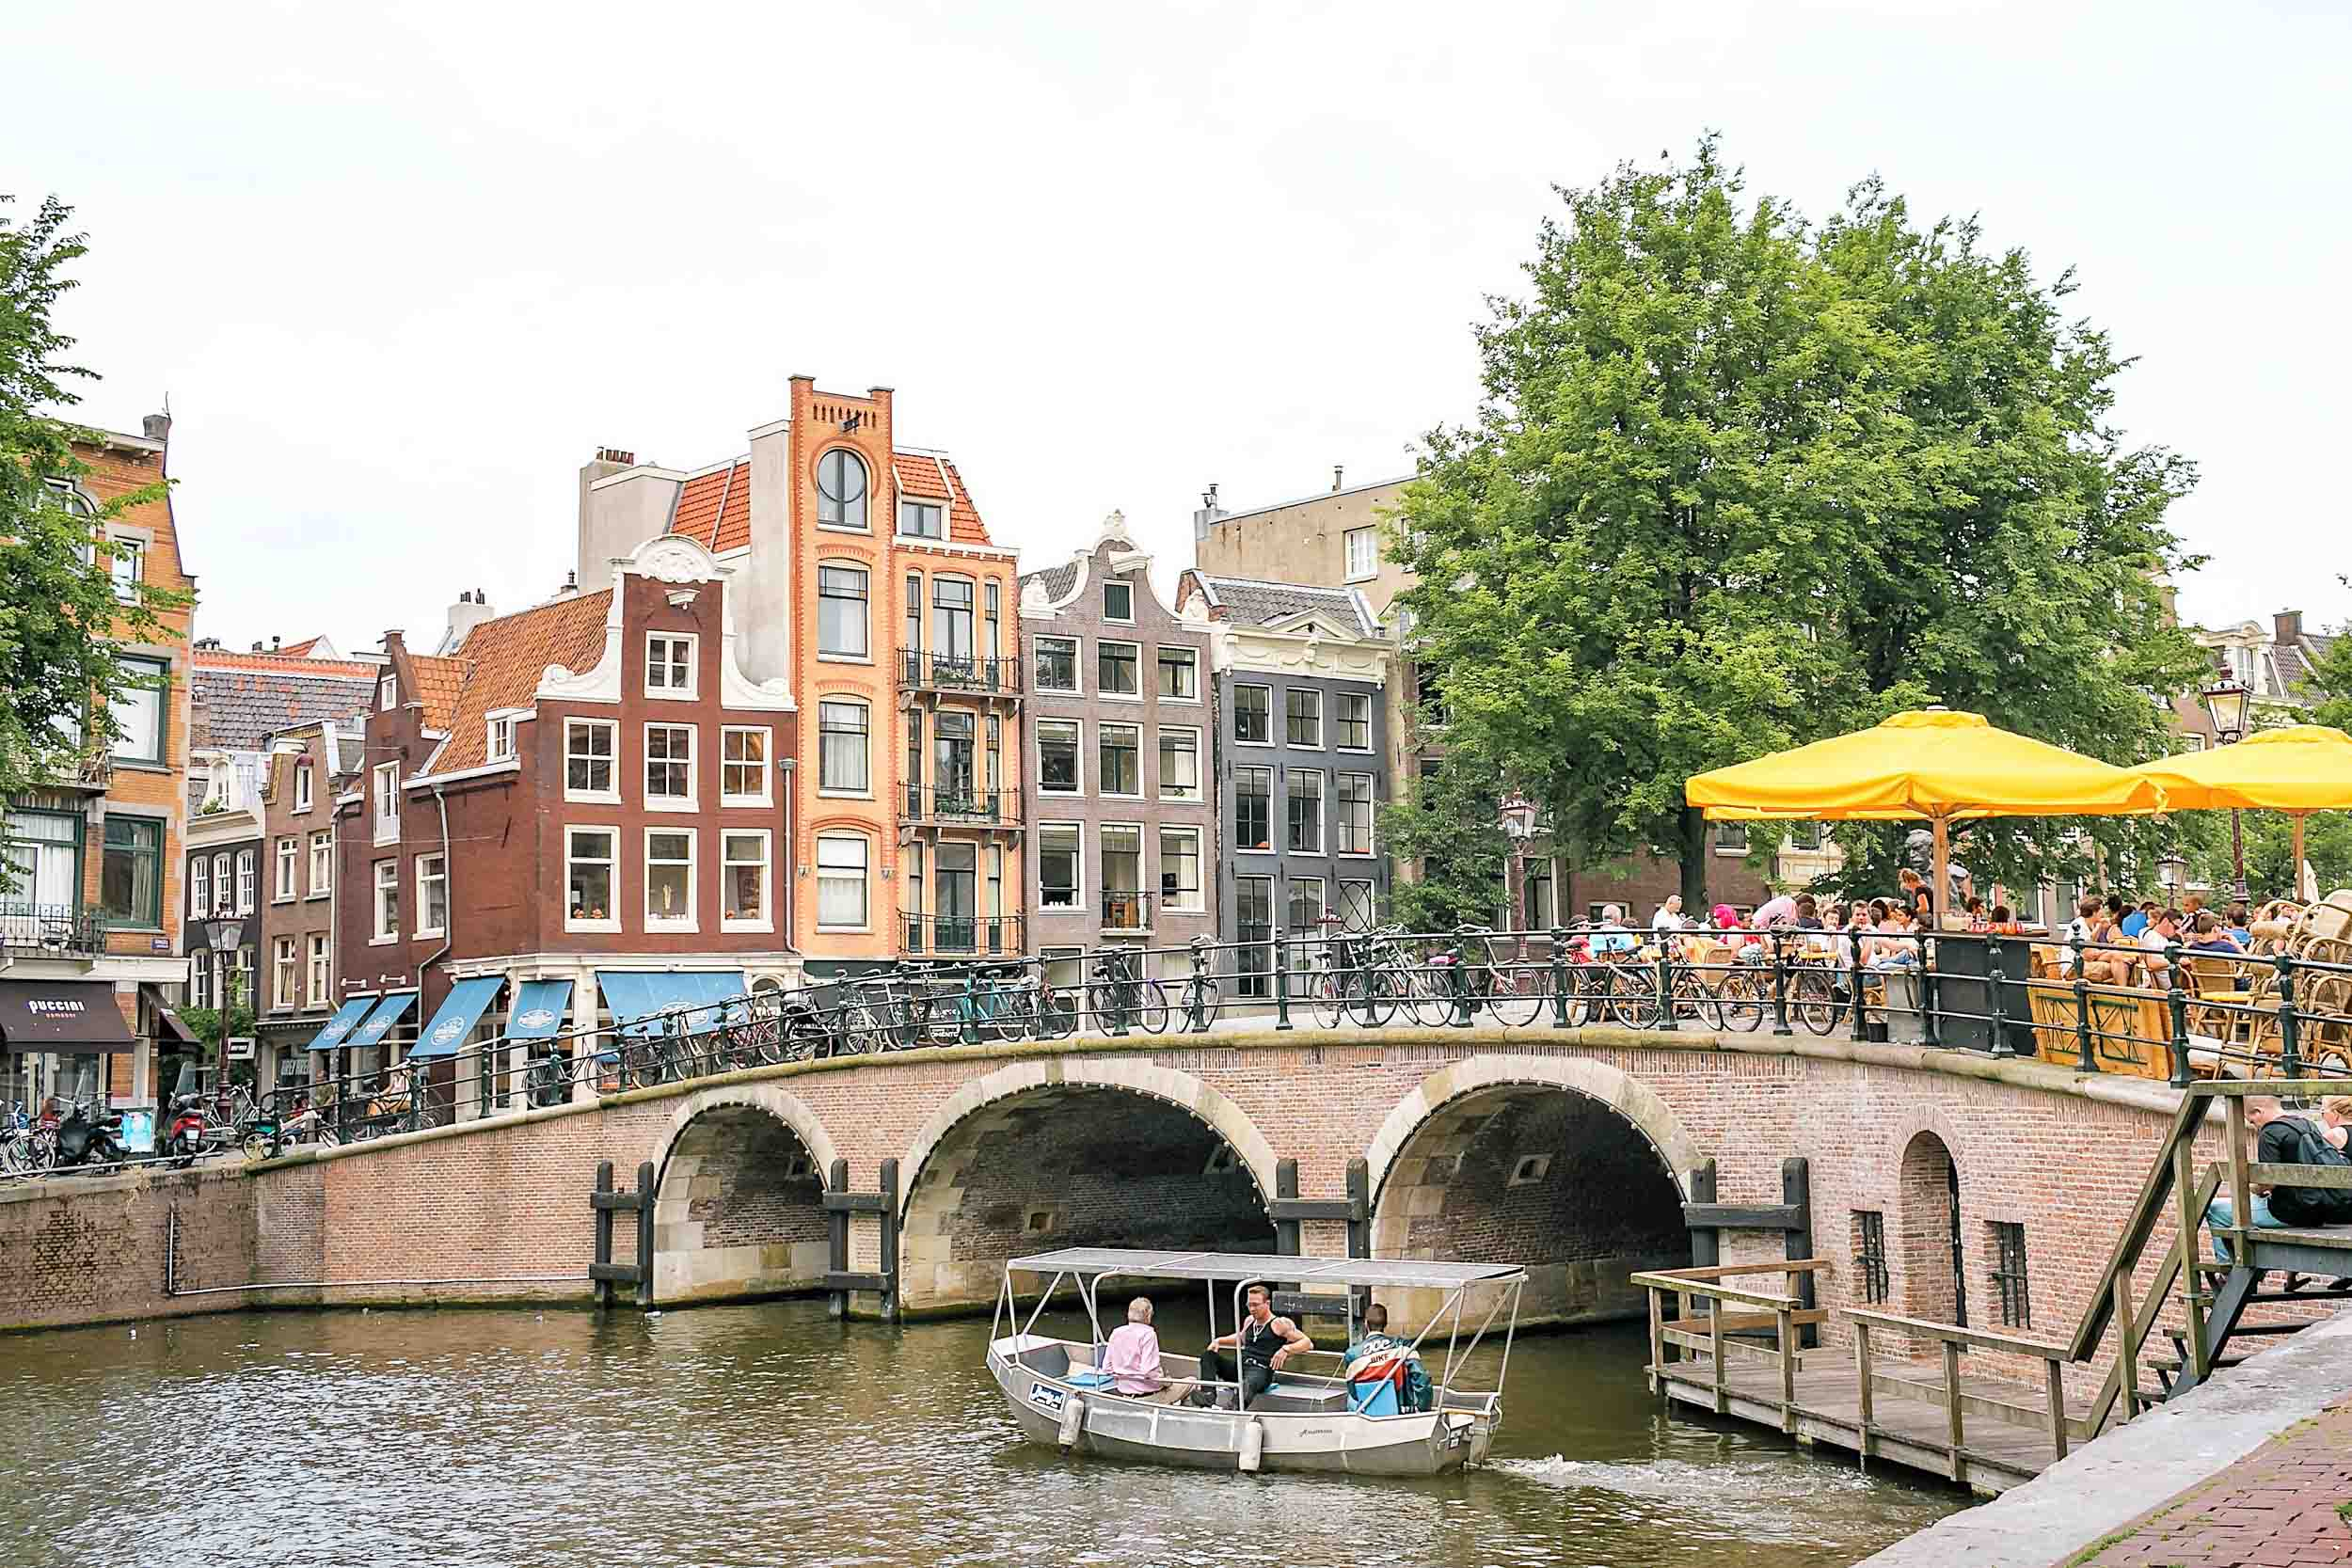 How to see the Netherlands in one week